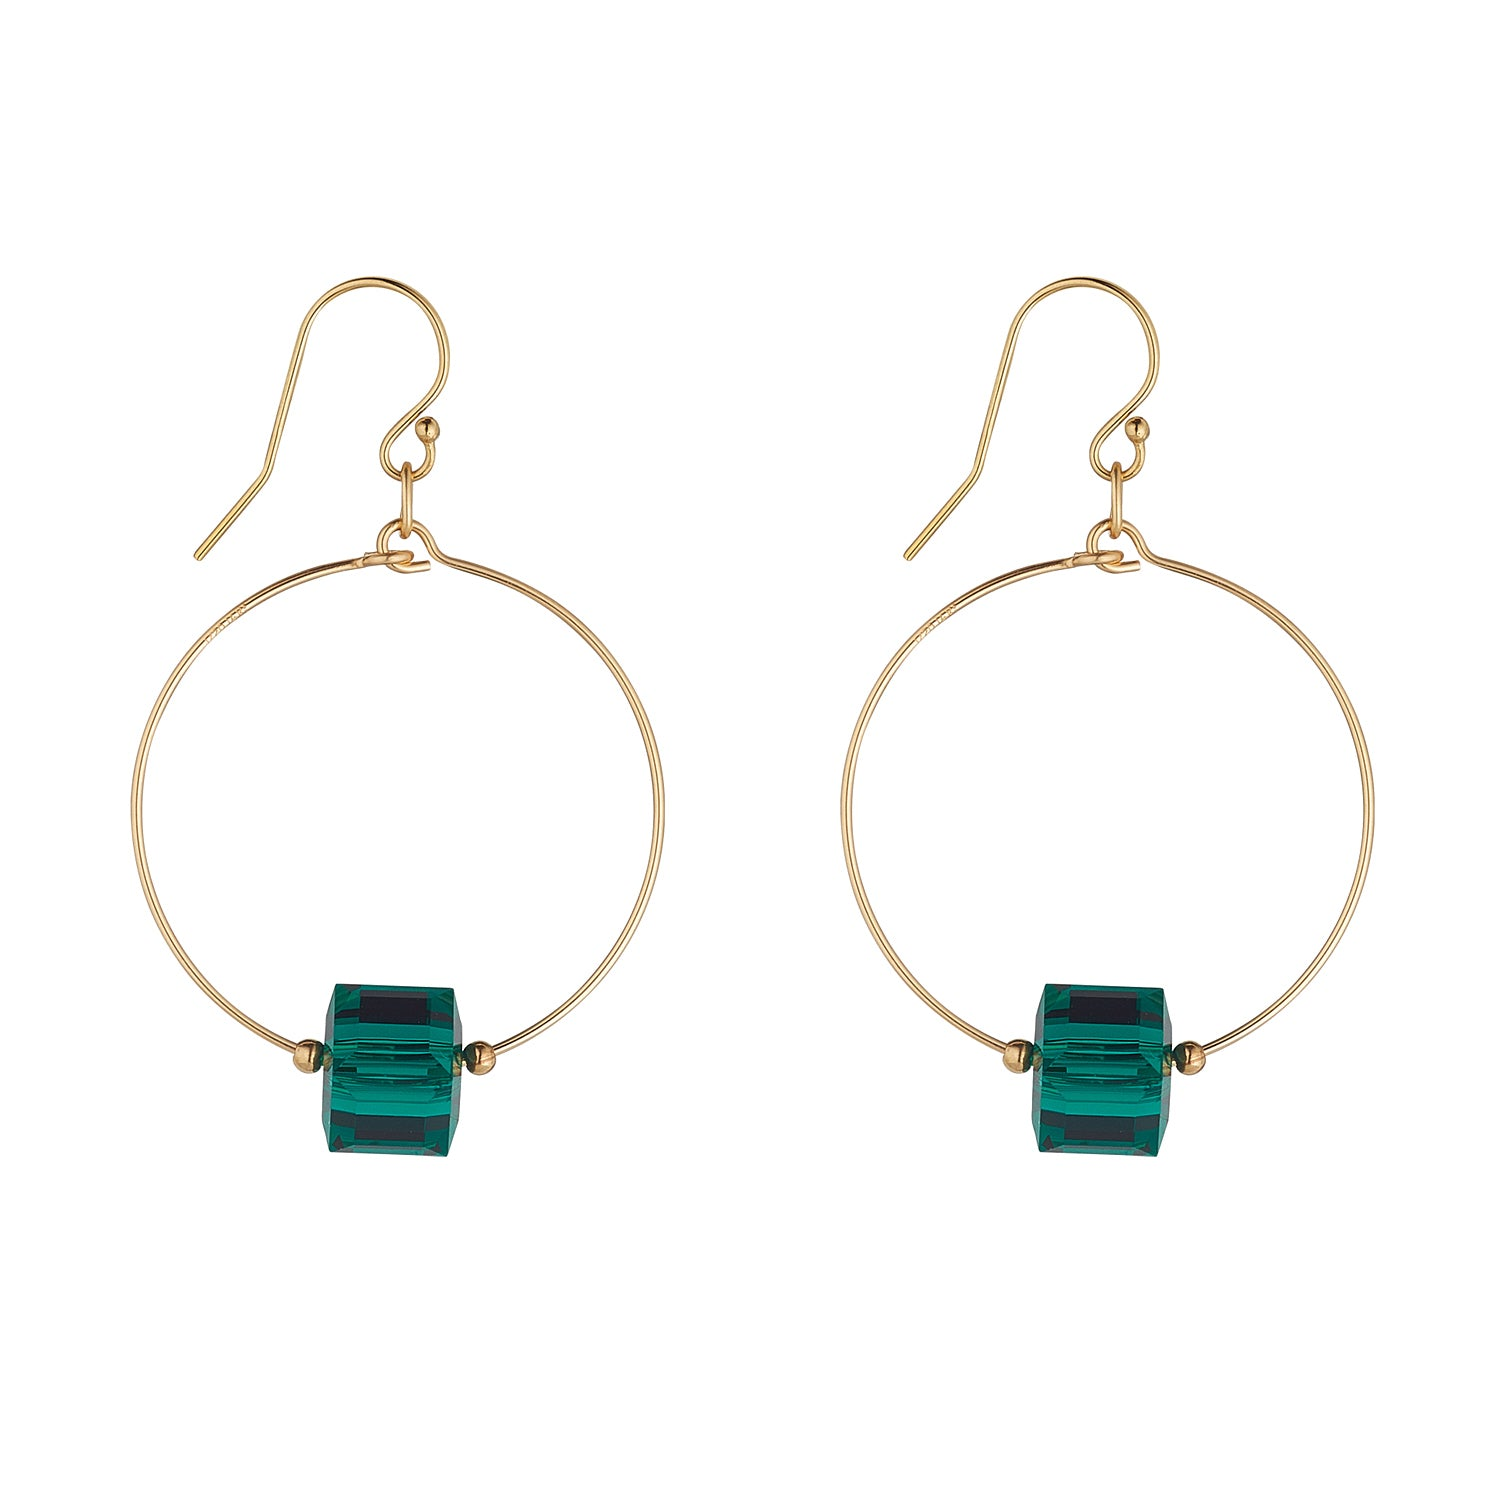 14kt Gold Filled Emerald Green Swarovski Cube Small Hoops